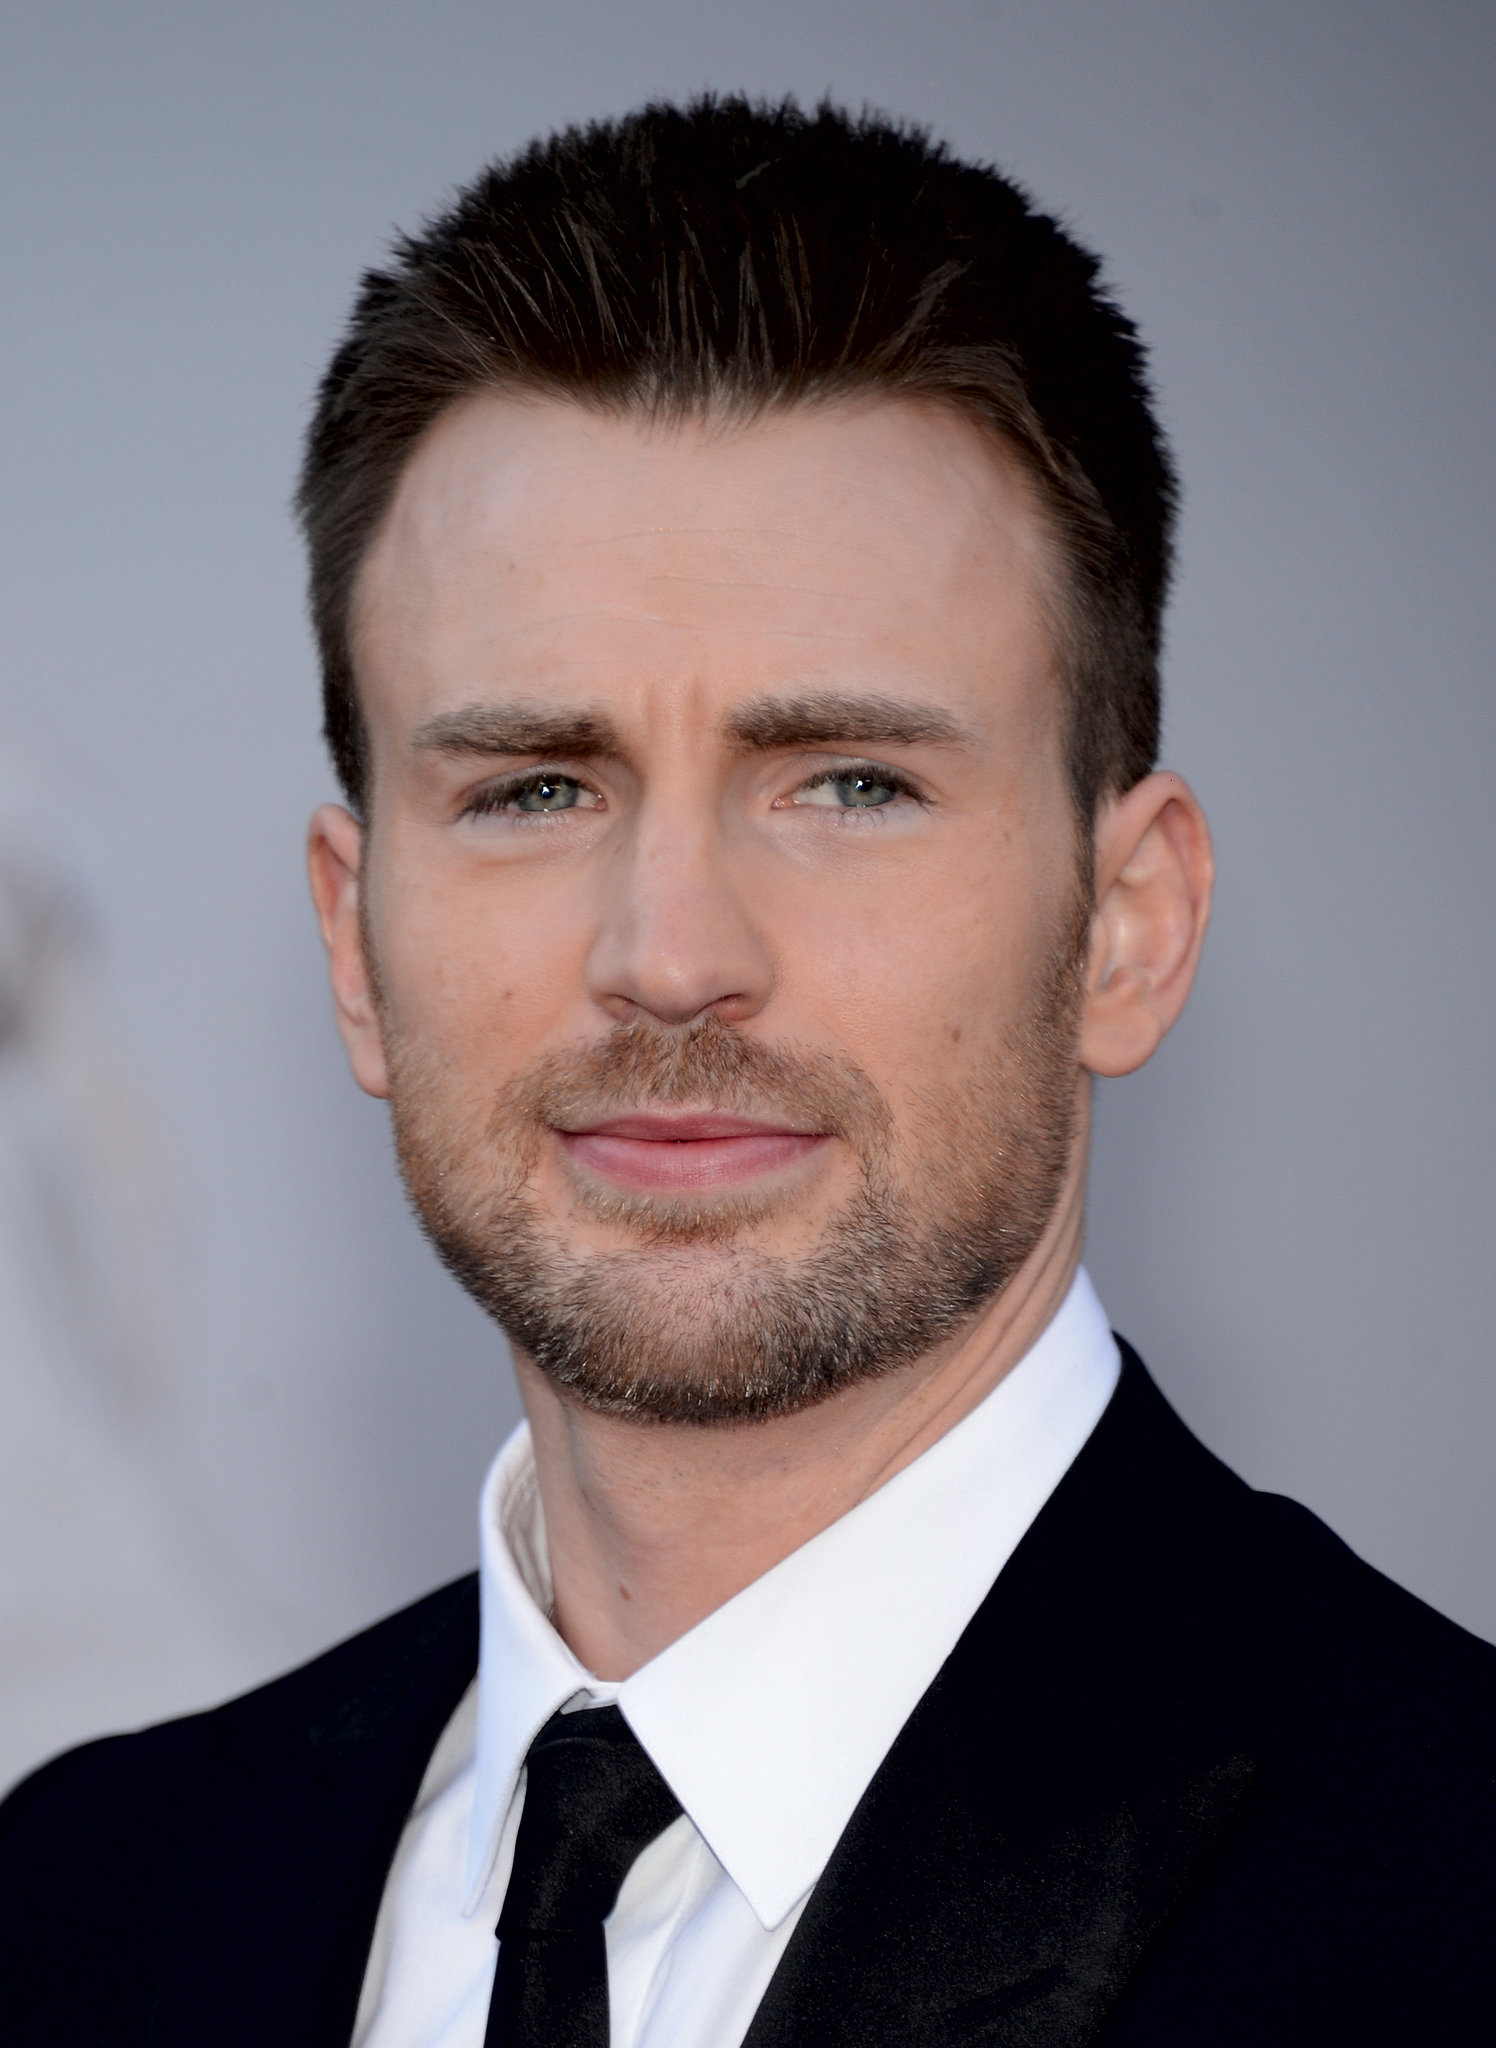 """In 2009, Chris Evans told The Advocate about his brother Scott's coming out: """"We spent the whole day together, got to the city, had some beers in my hotel room, got into a really great talk, and he came out. I was so glad that he did. That's got to be a difficult transition, but I come from the most liberal household you have ever heard of. . . . I think my mother was praying for [both of] us to be gay, so at least she got one of us."""""""